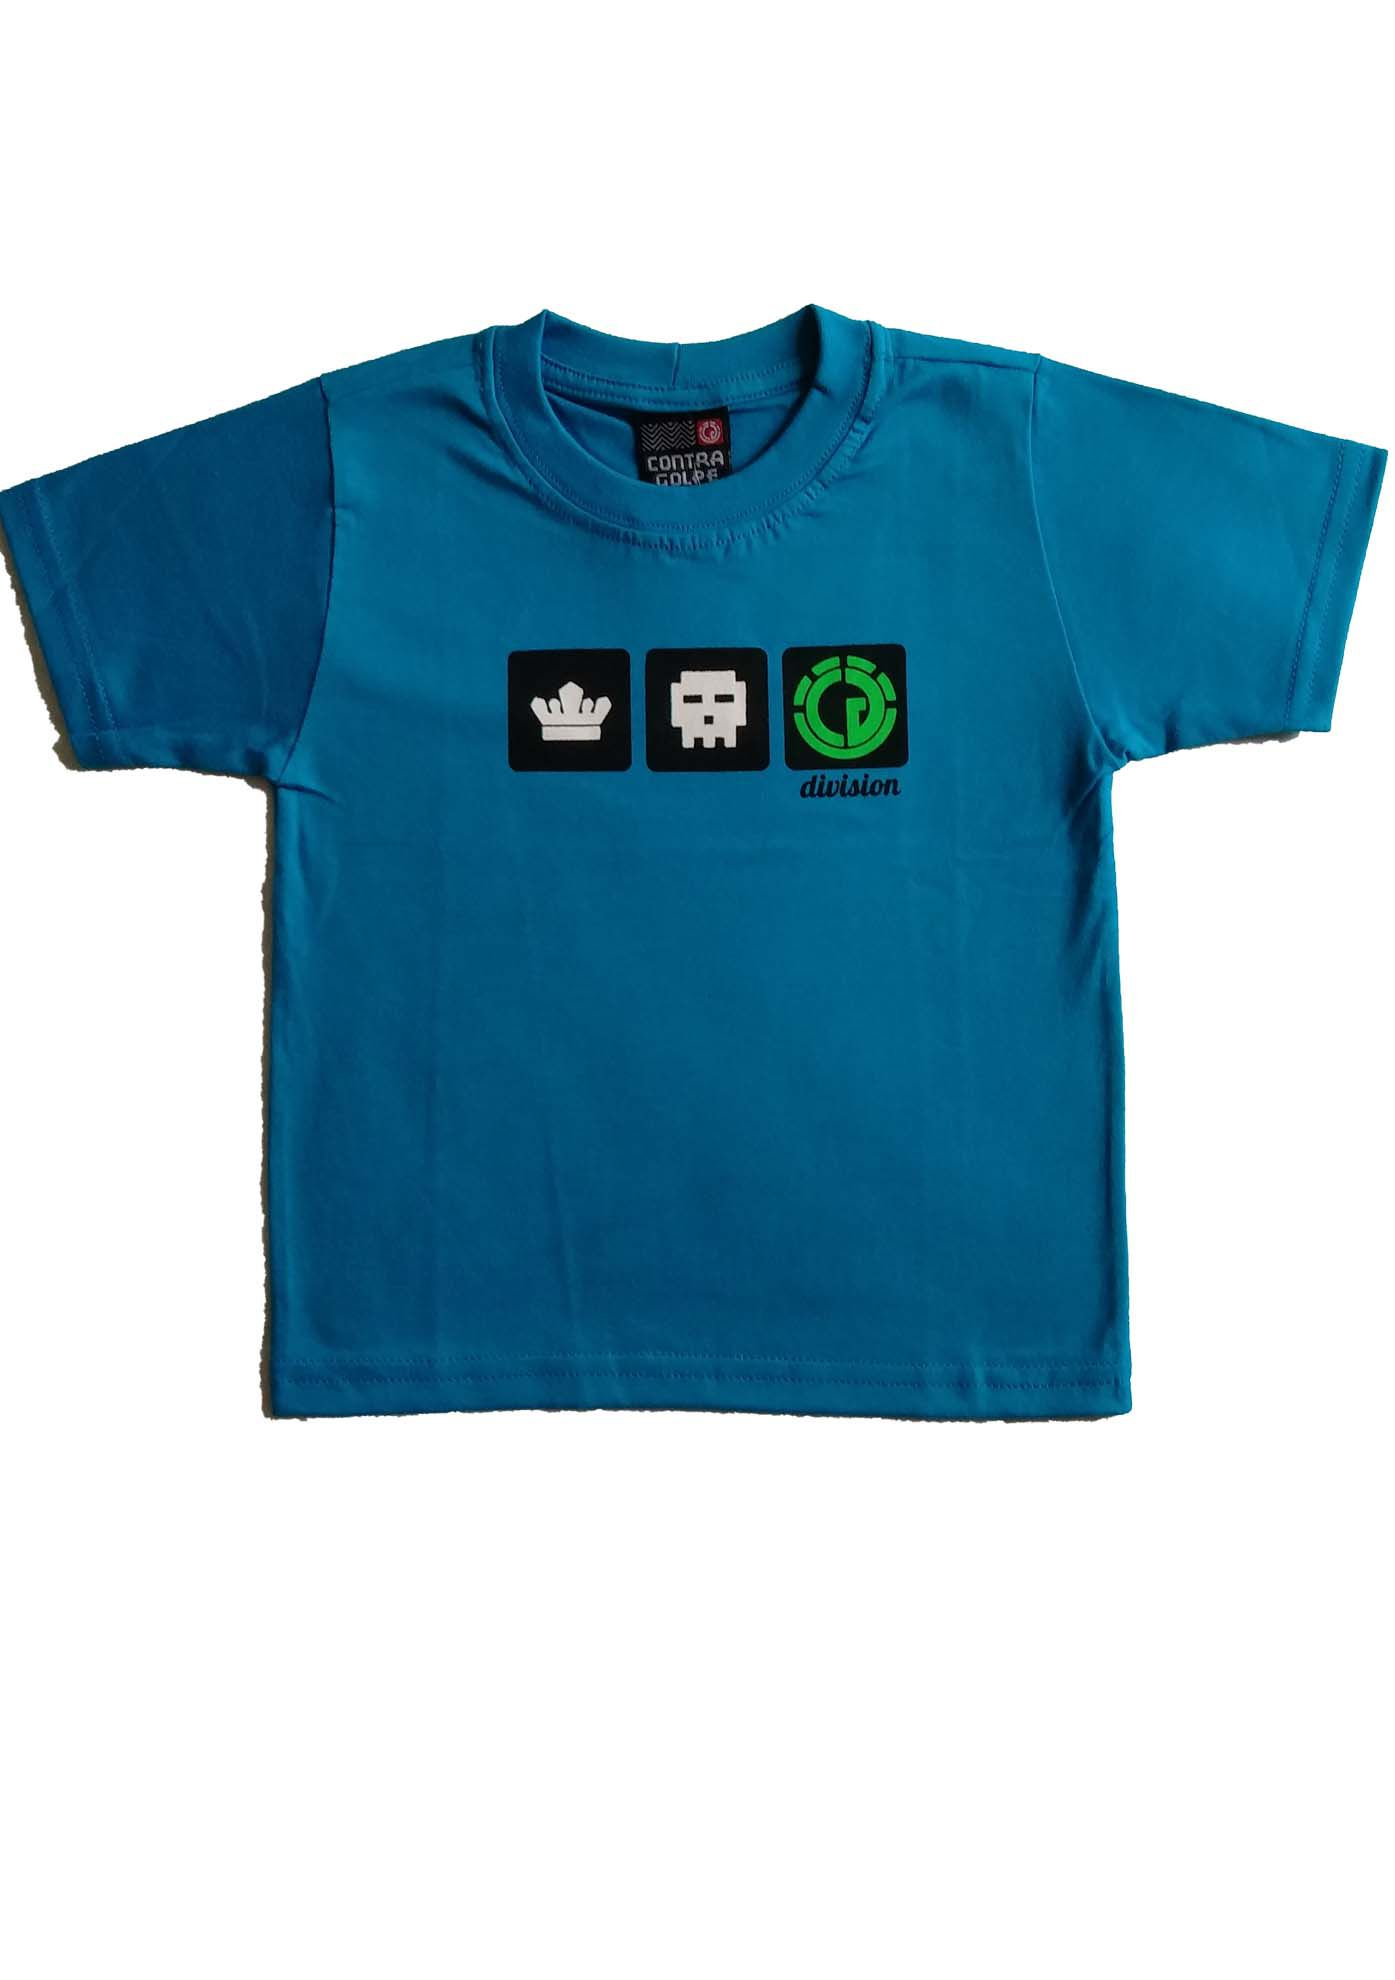 CAMISETA SURFEROS C/ SILK DIVISION ROYAL